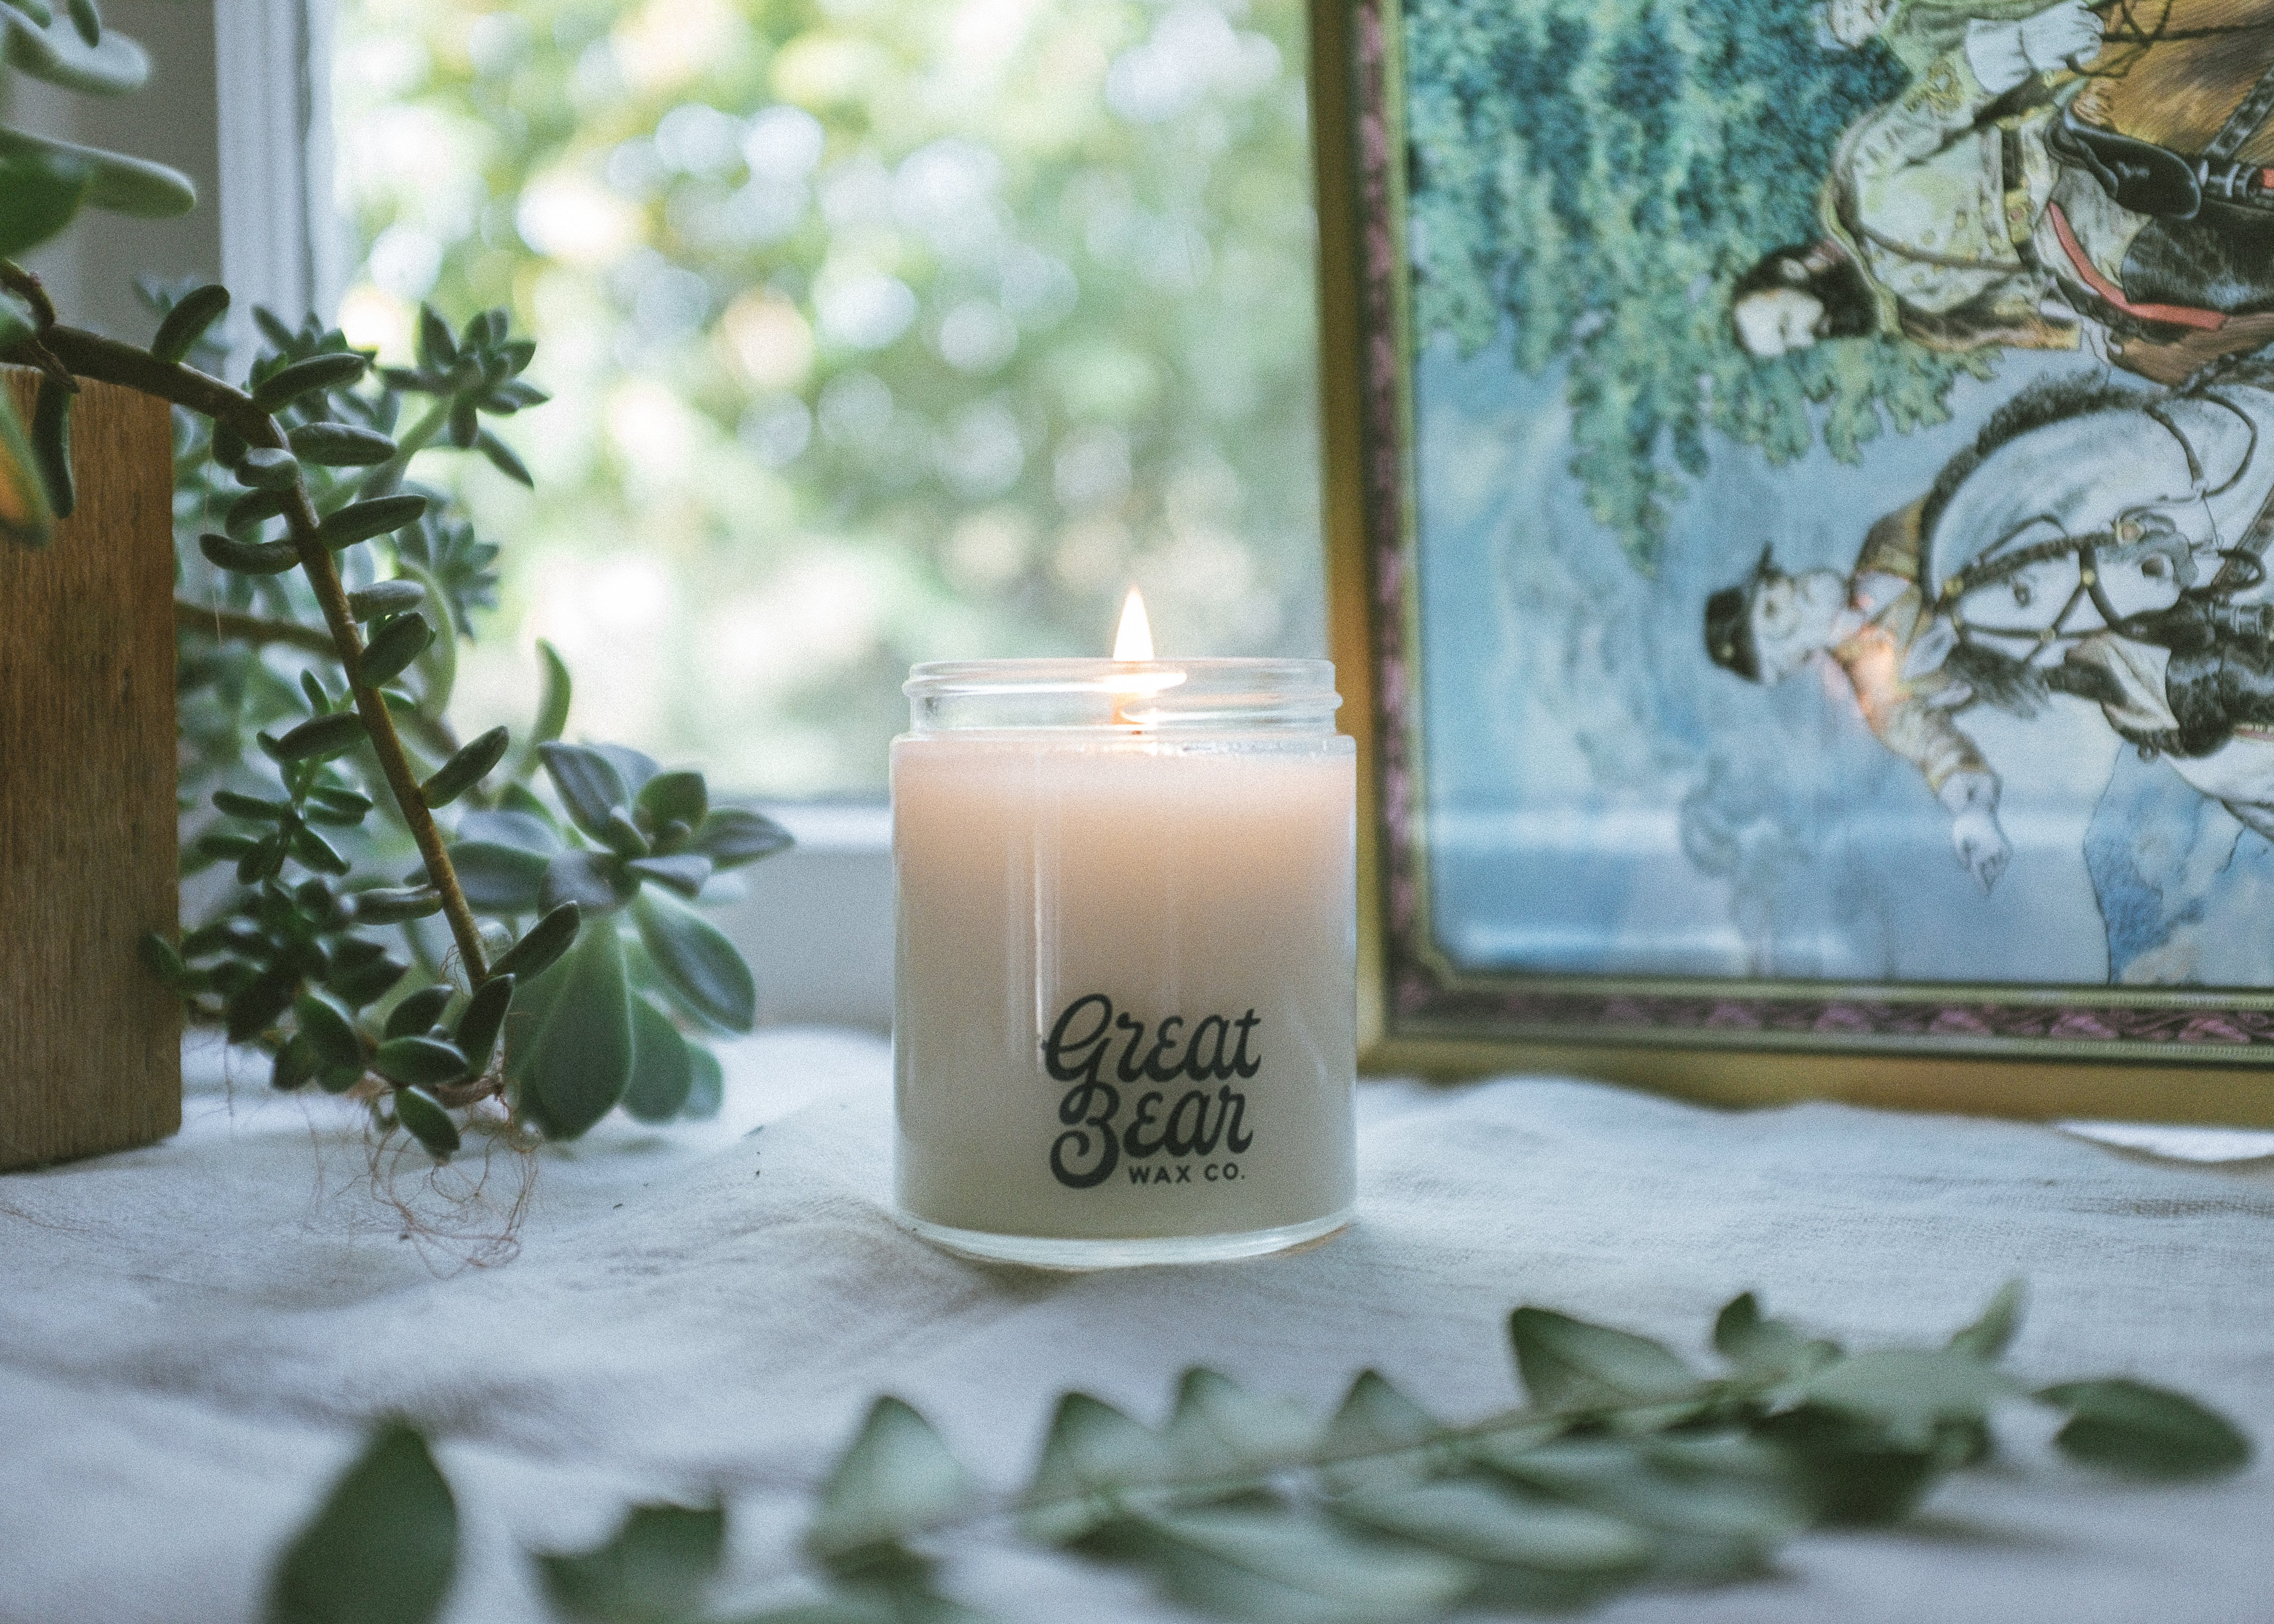 forest - 6oz candle *sample sale - old label